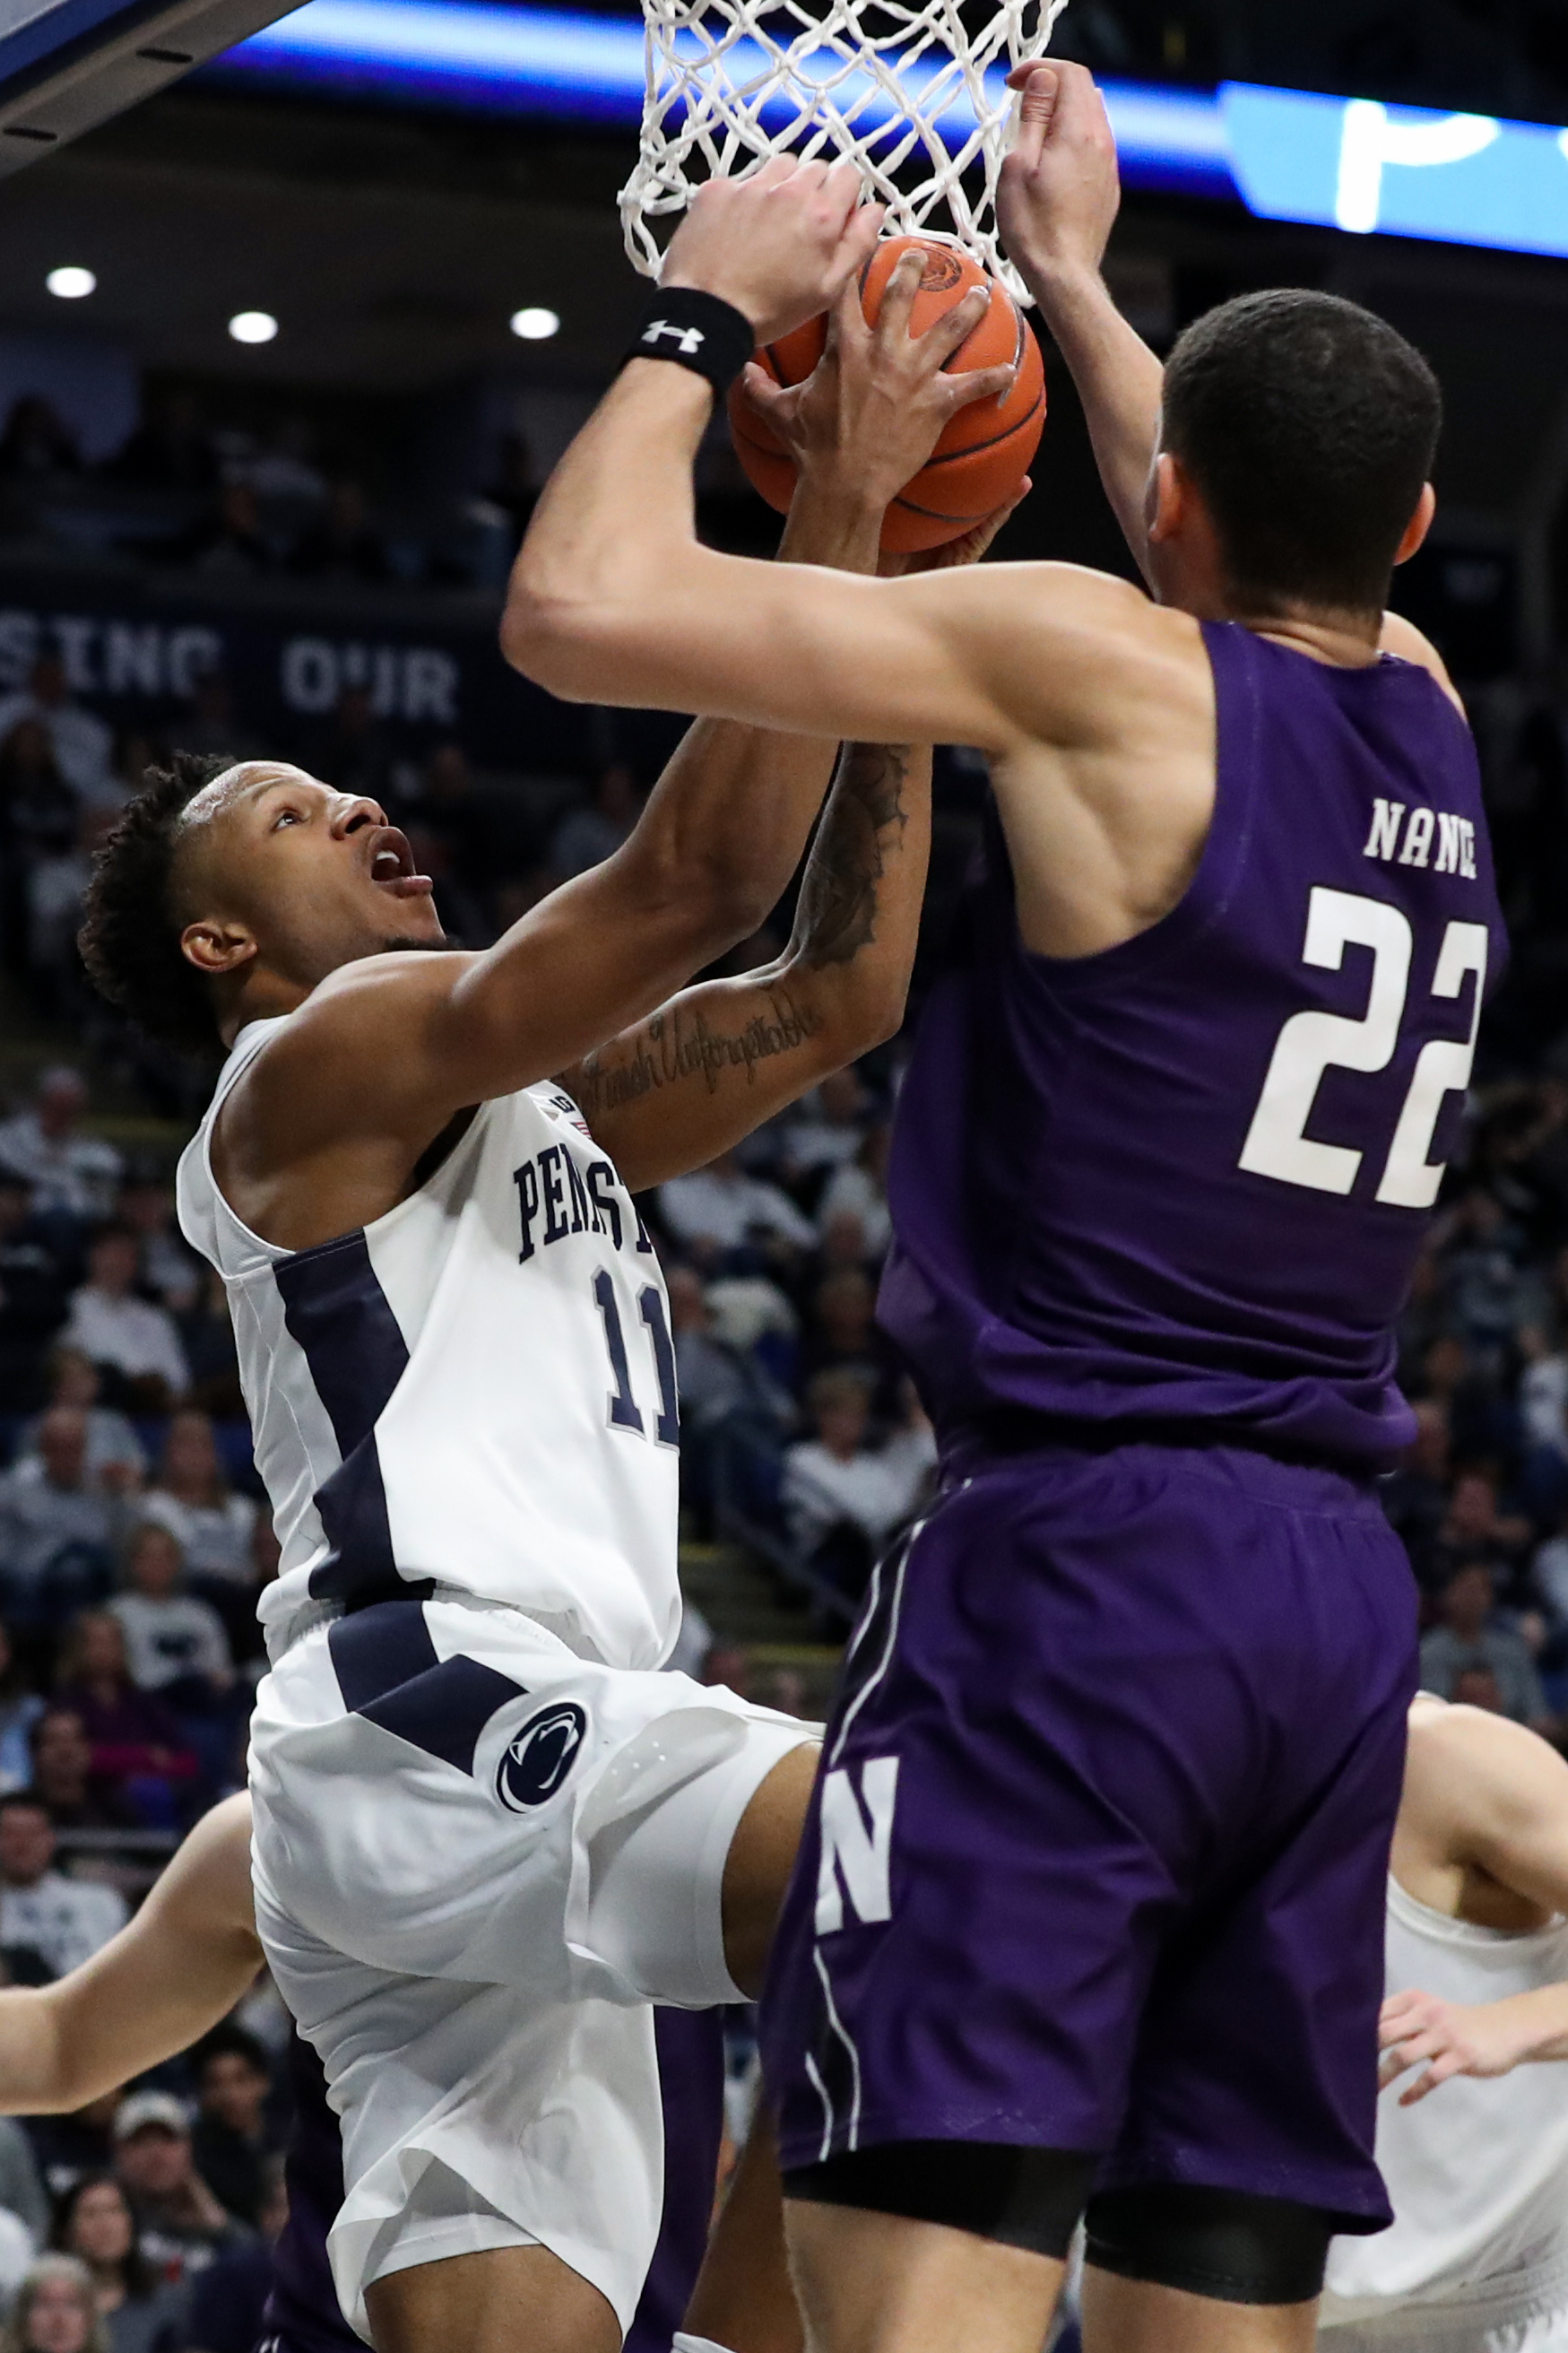 NCAA Basketball: Northwestern at Penn State